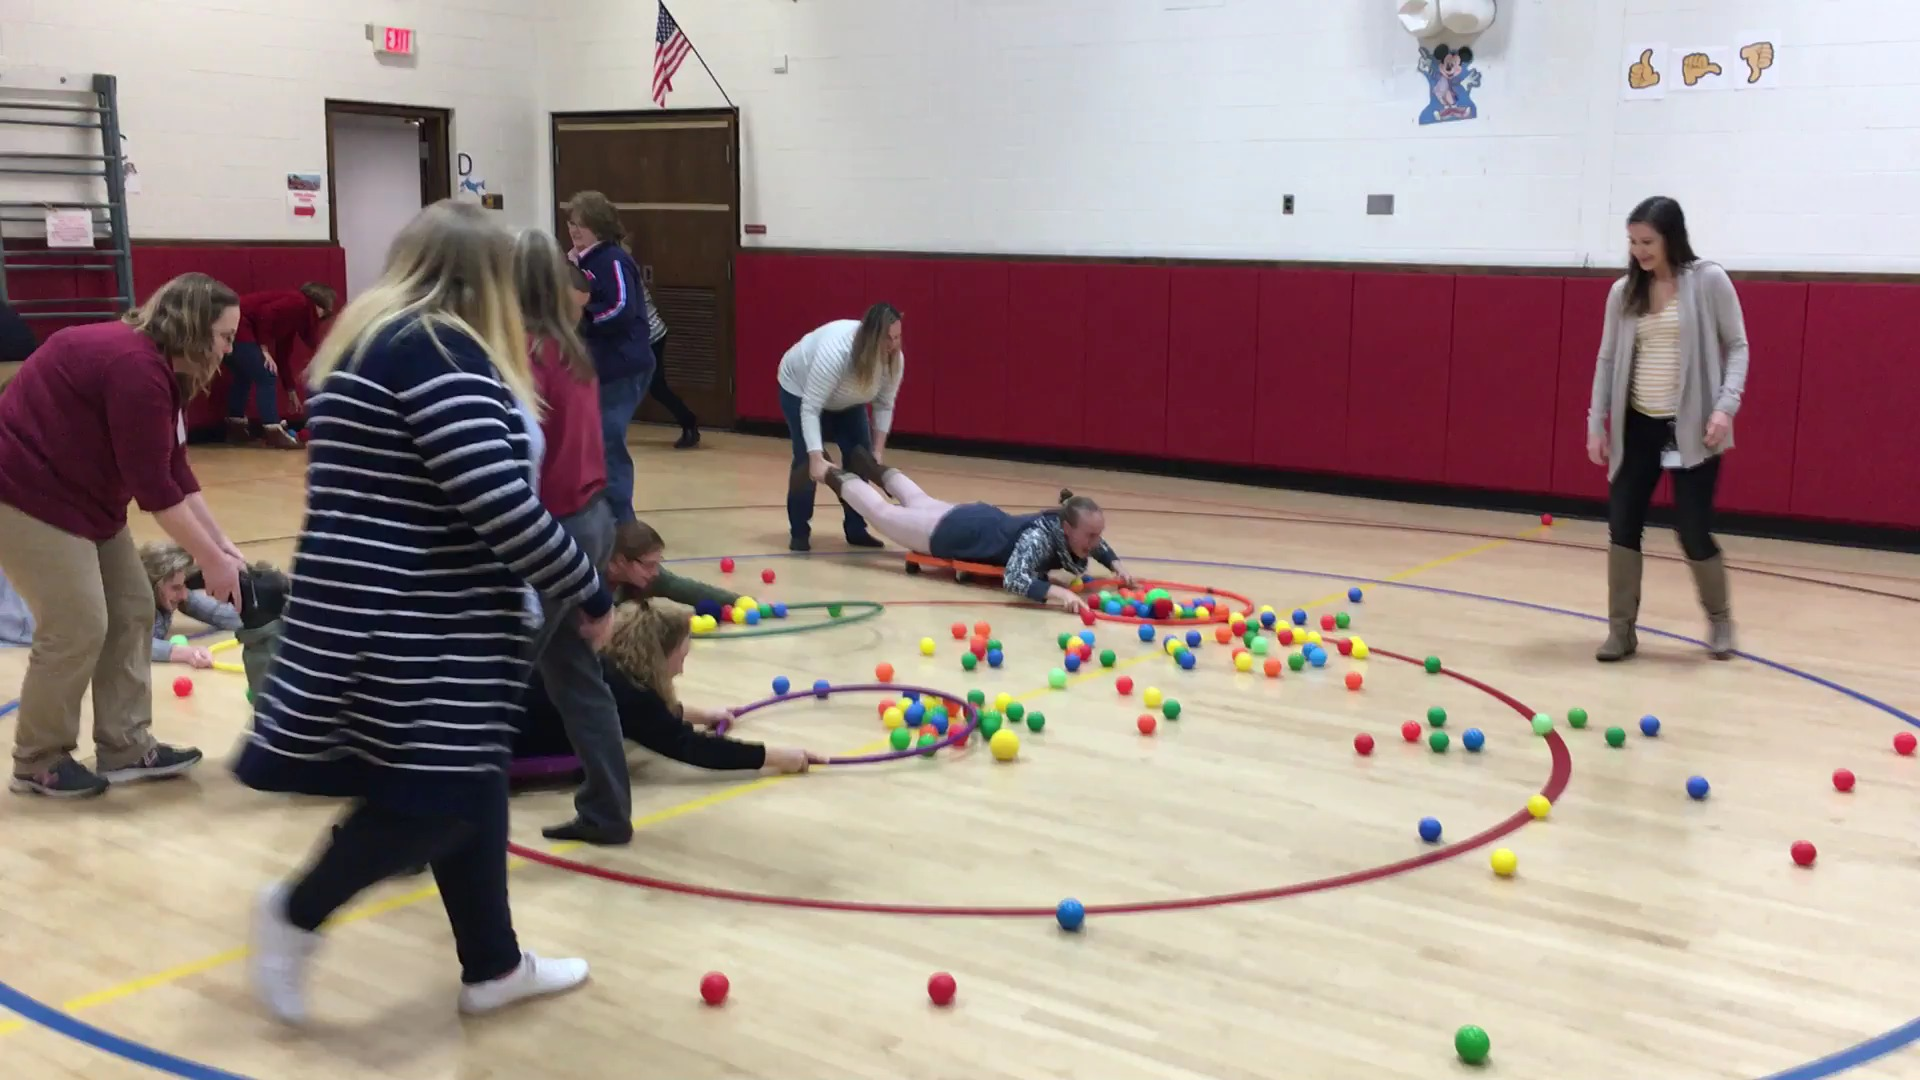 LIM Faculty Mtg. Hungry Hungry Hippos Game